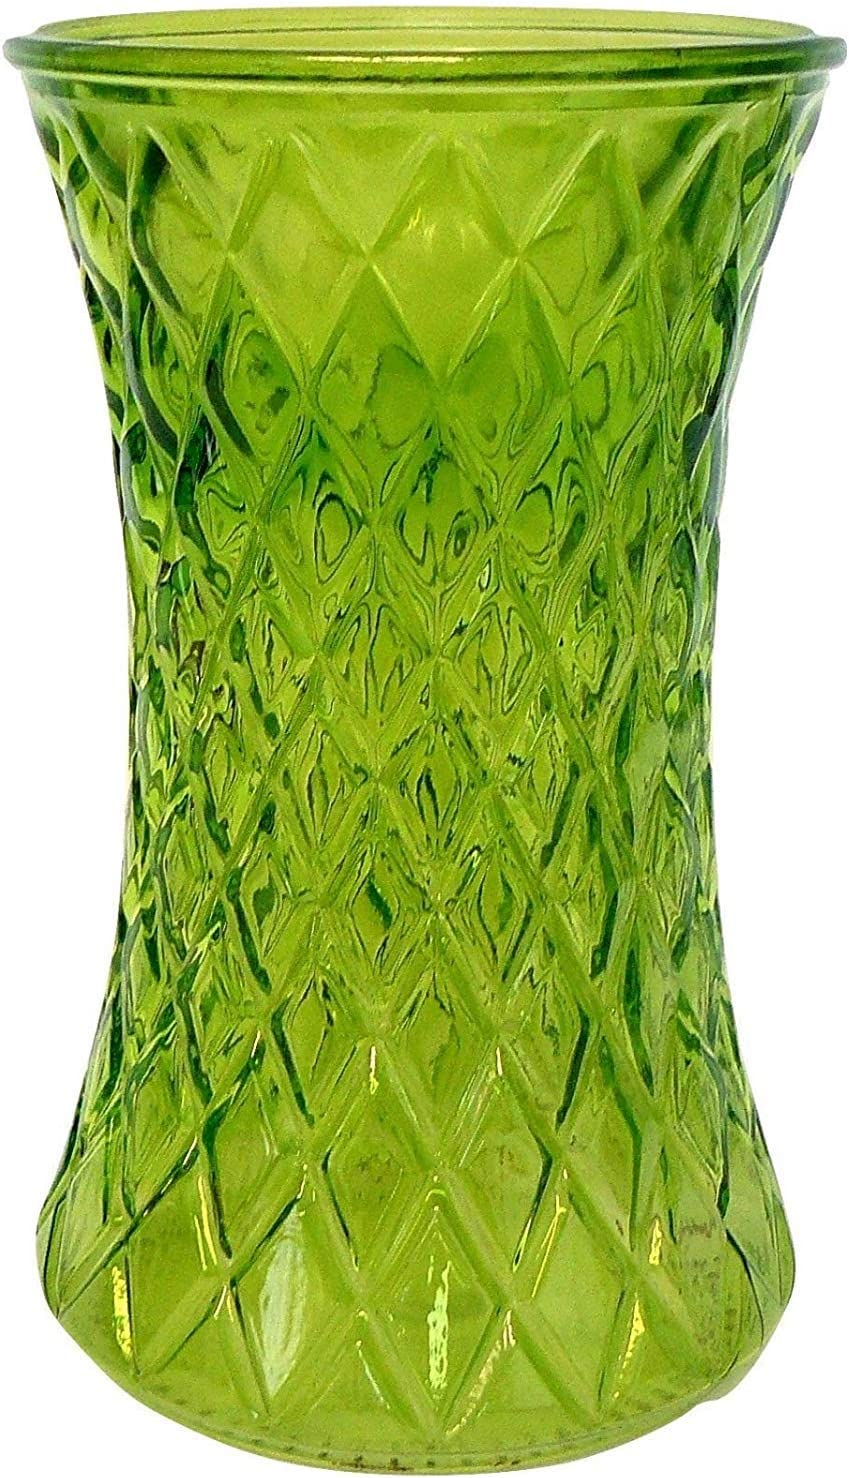 Green etched glass bud vase